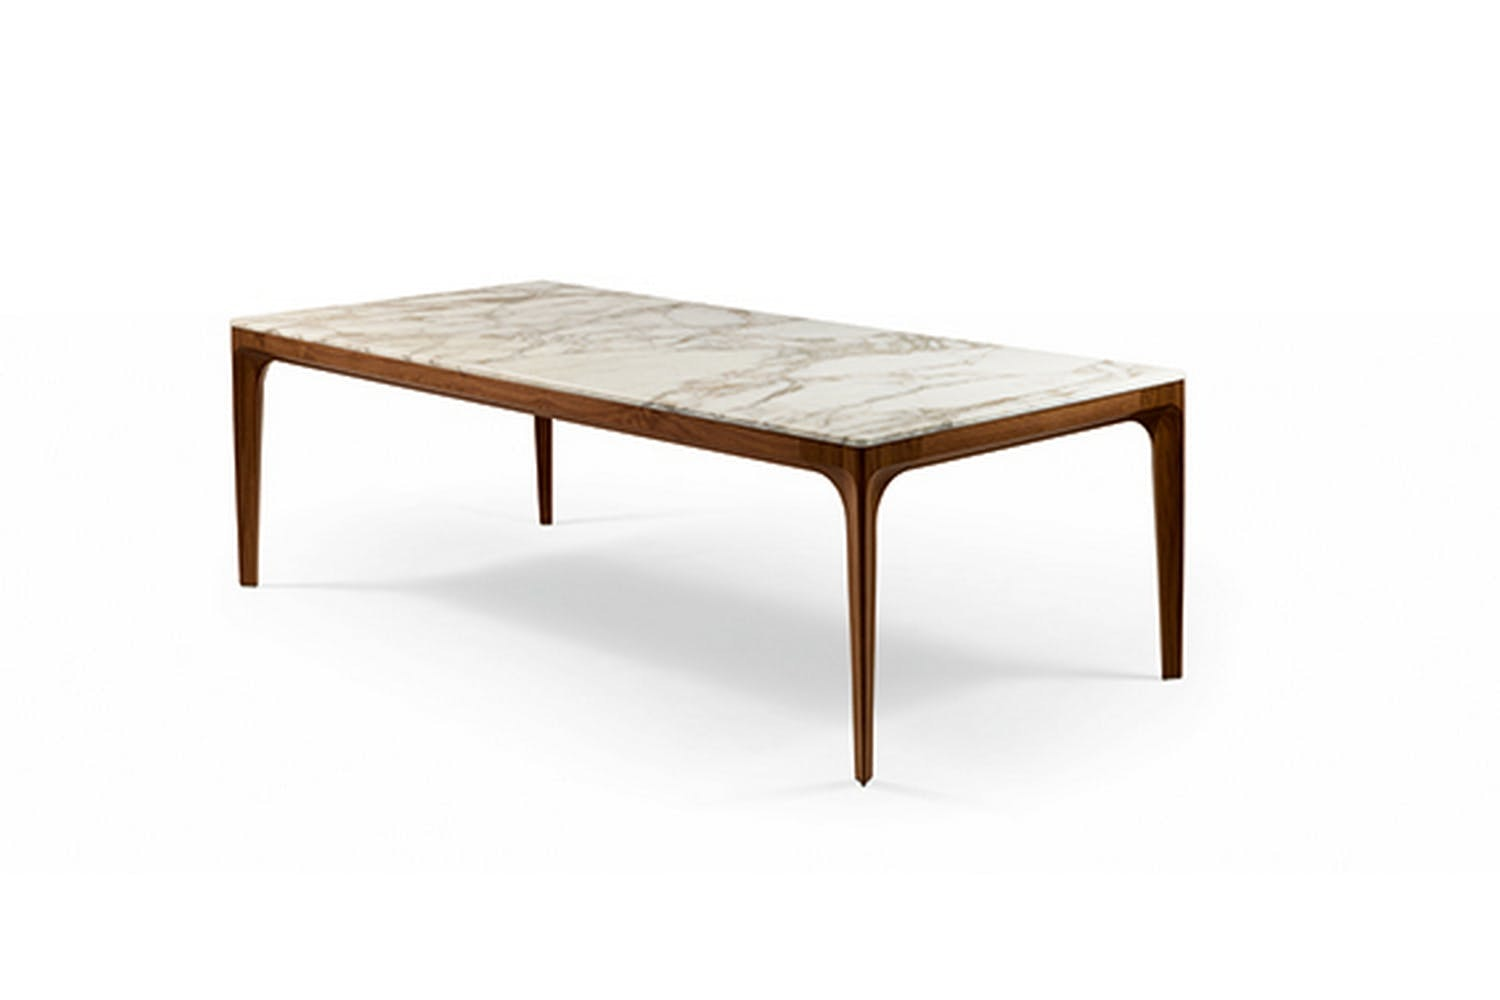 Anteo Table by Carlo Colombo for Giorgetti